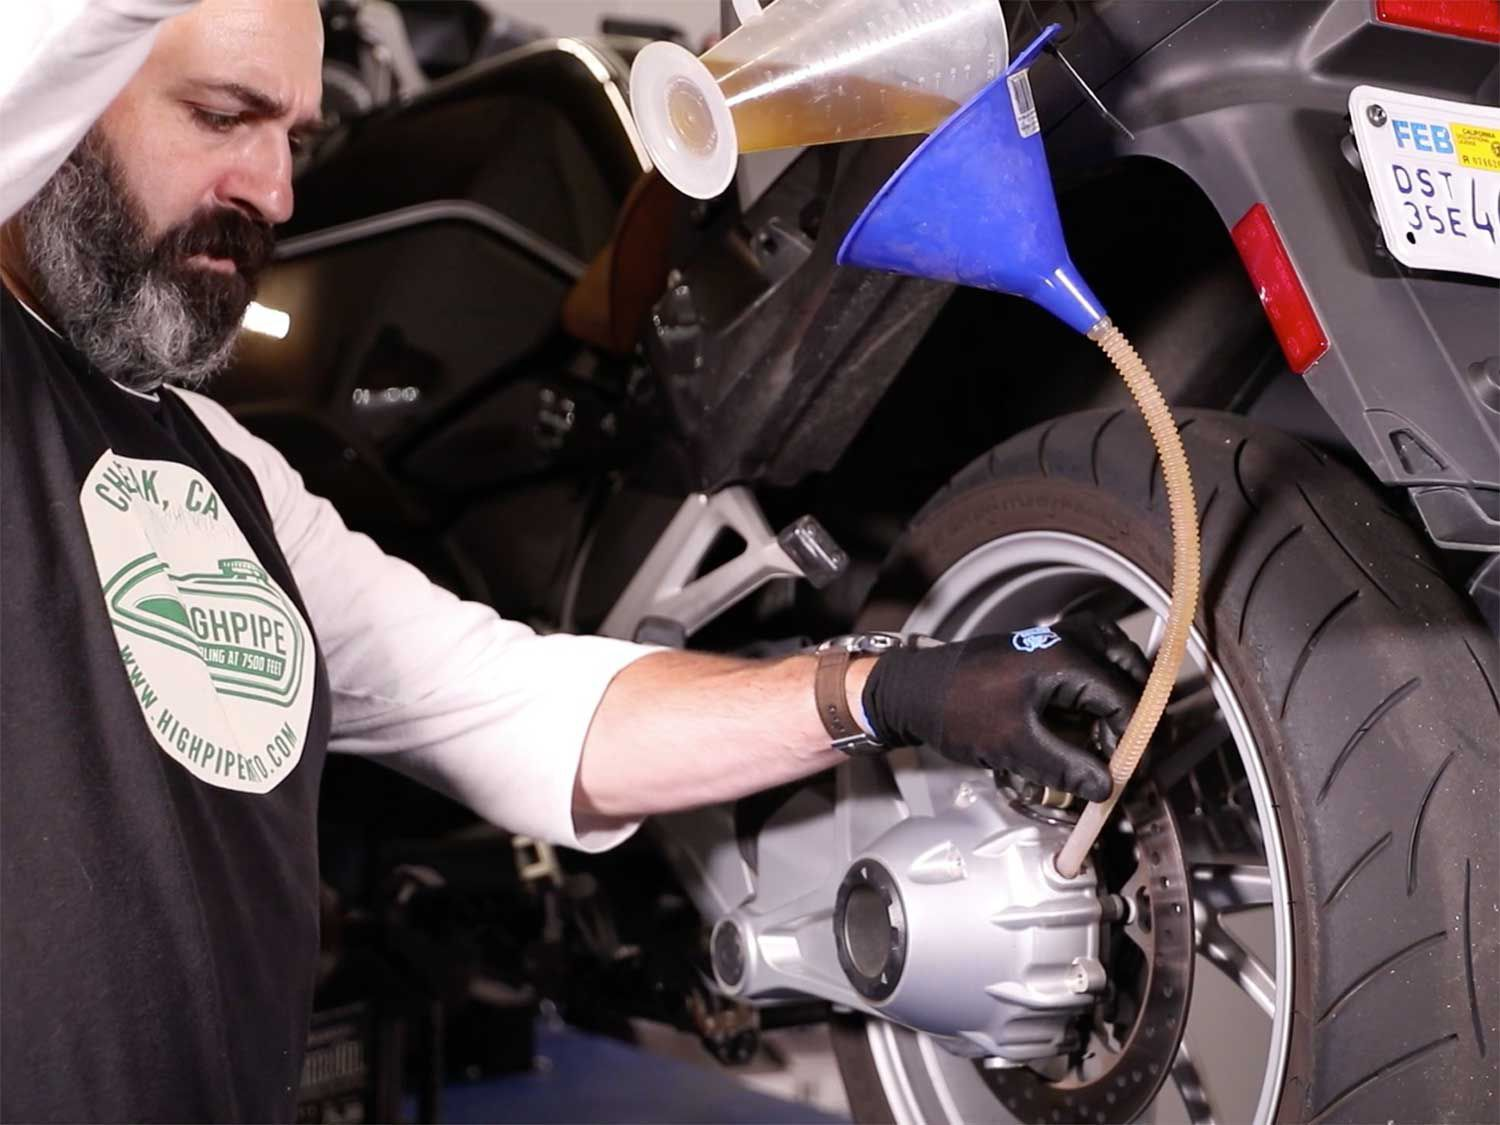 In this episode of <em>MC Garage</em> we show you how to maintain the shaft final drive mechanism on your motorcycle.